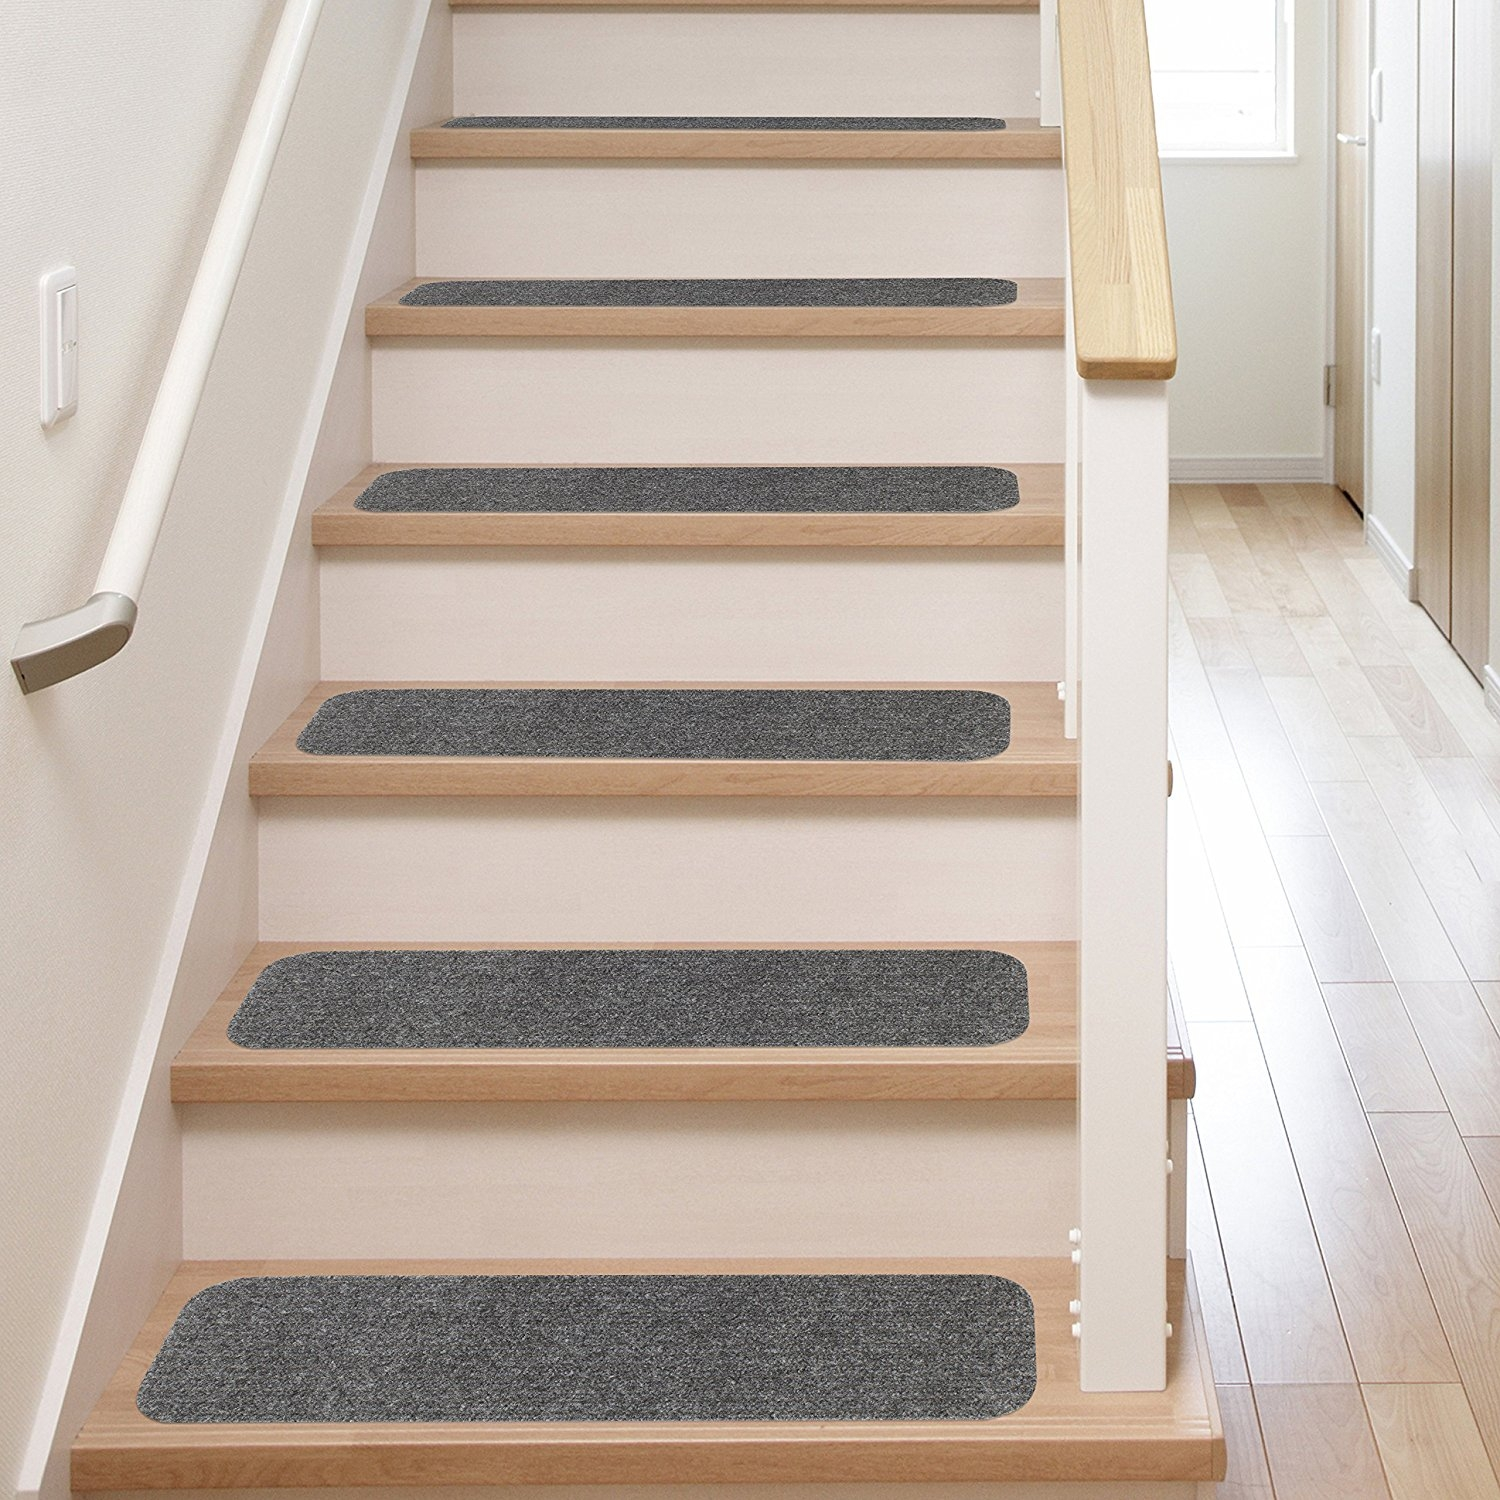 13 Stair Treads Non Slip Carpet Pads Easy Tape Installation Within Stick On Carpet For Stairs (Image 1 of 15)